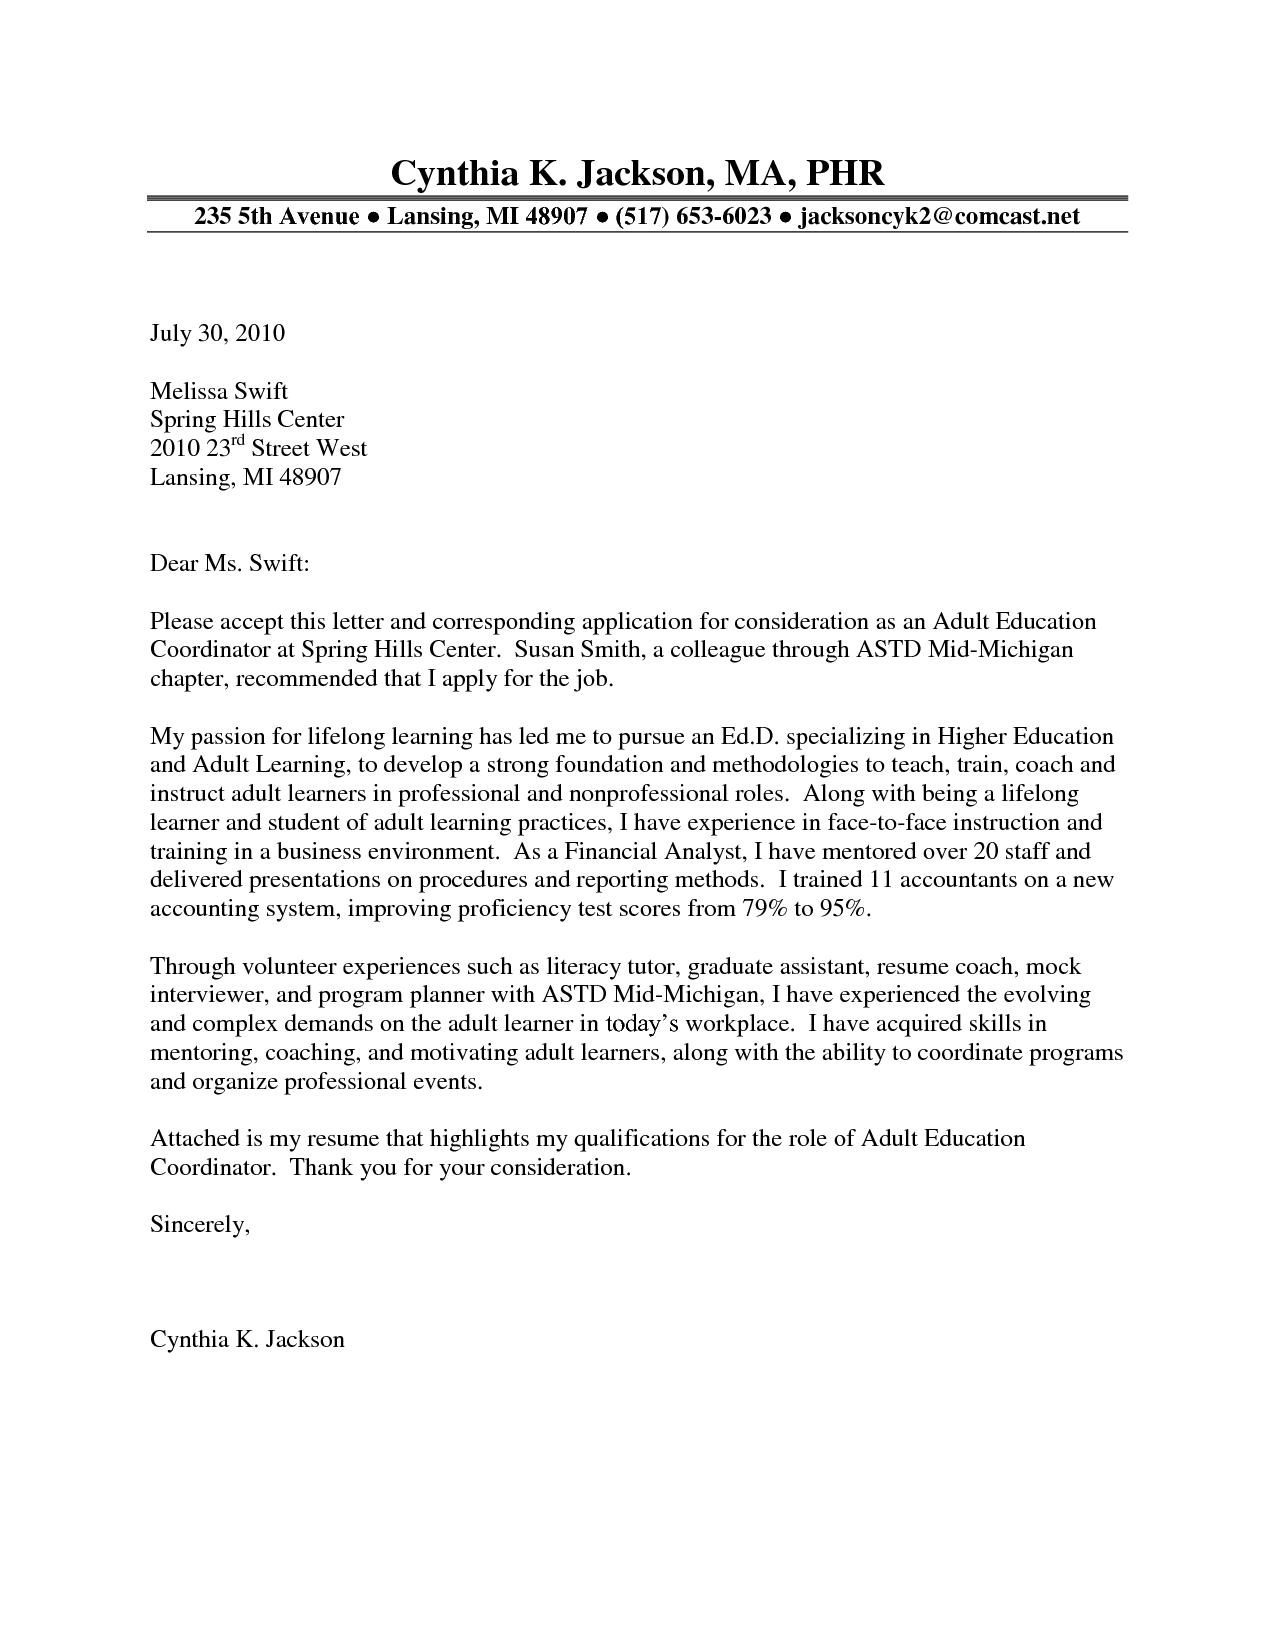 sample cover letter for education coordinator cover letter sample cover letter for education coordinator